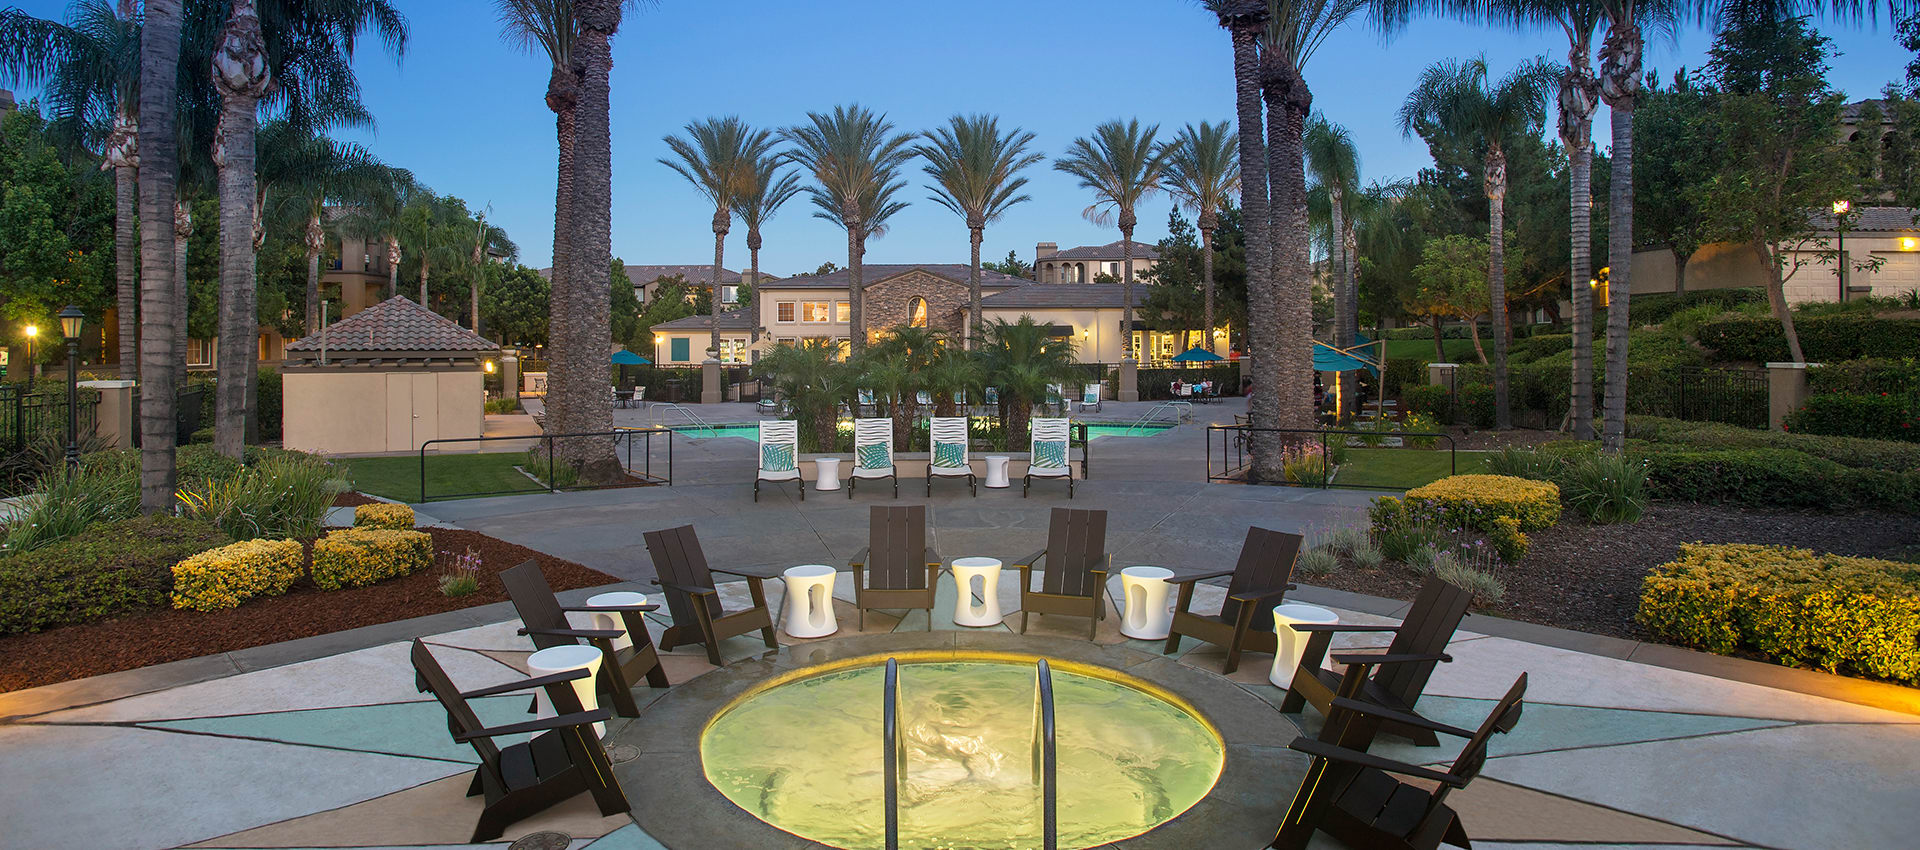 Resort Style Pool And Spa at Esplanade Apartment Homes in Riverside, CA